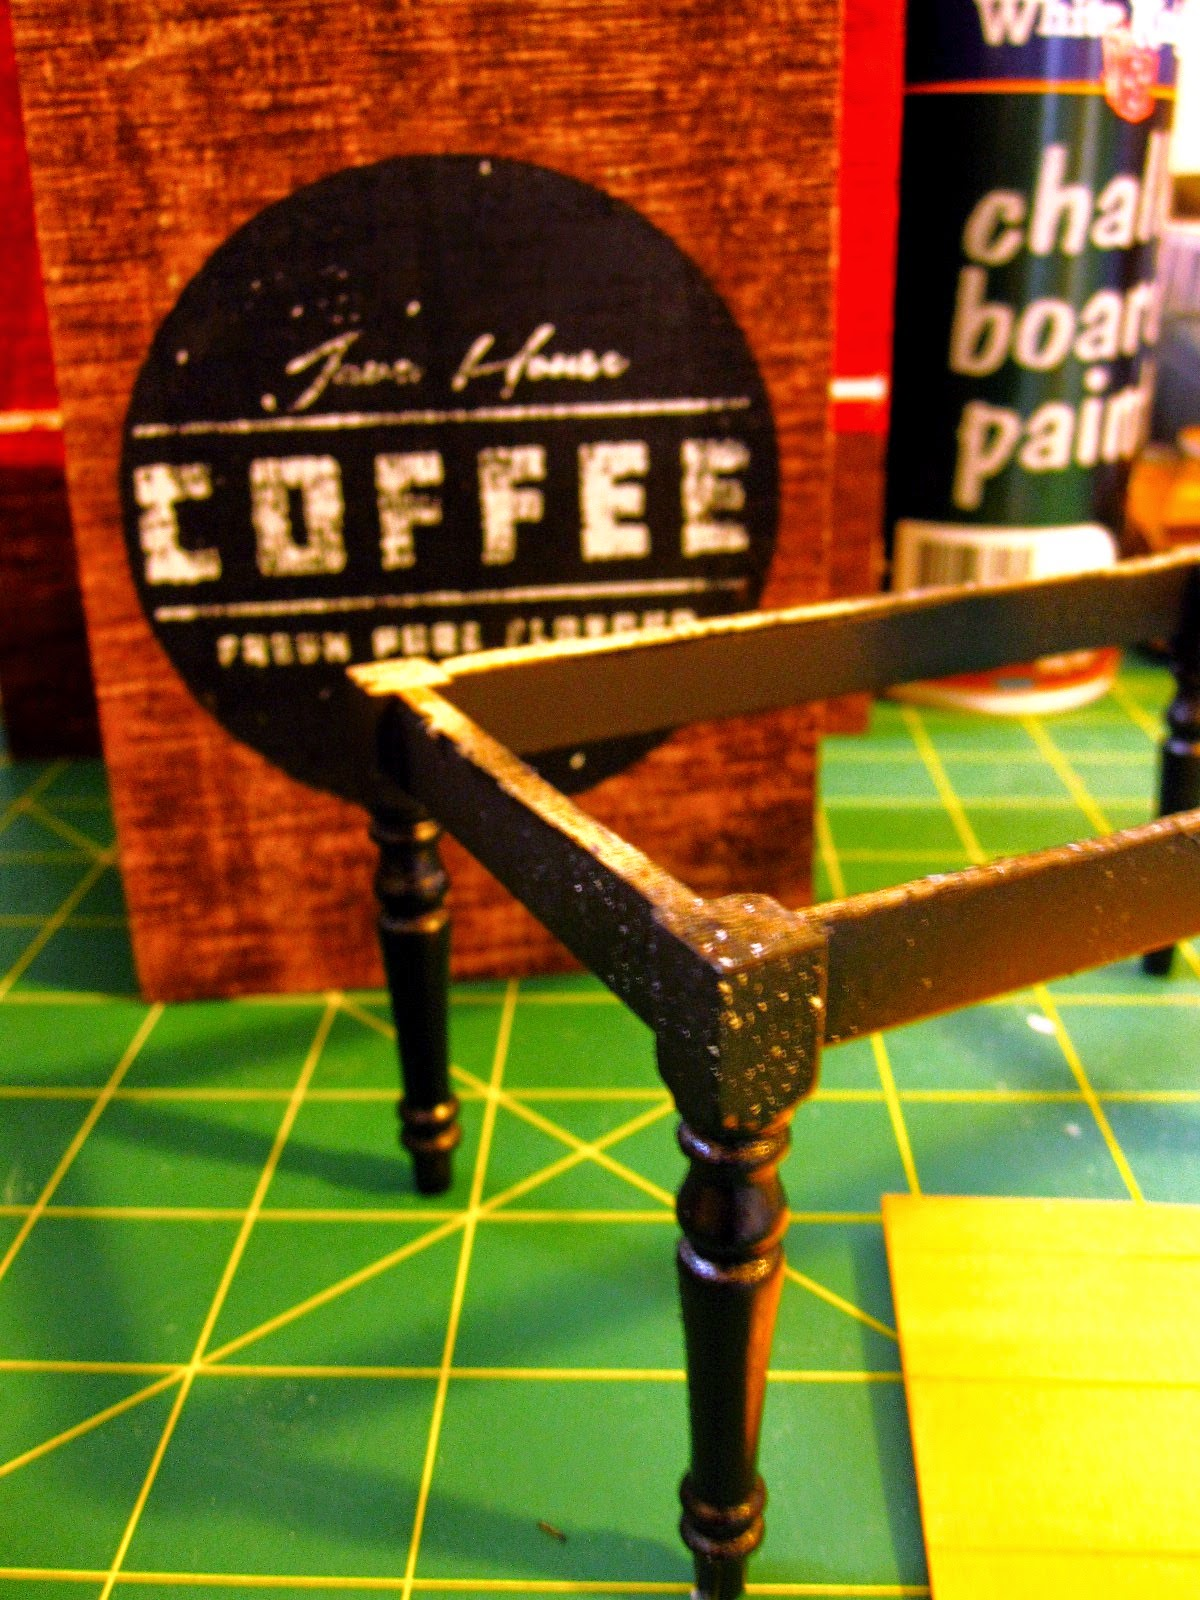 Miniature dining table leg assembly, painted black, sitting on a cutting mat with a spray can of chalkboard paint and a wooden coffee storage box.